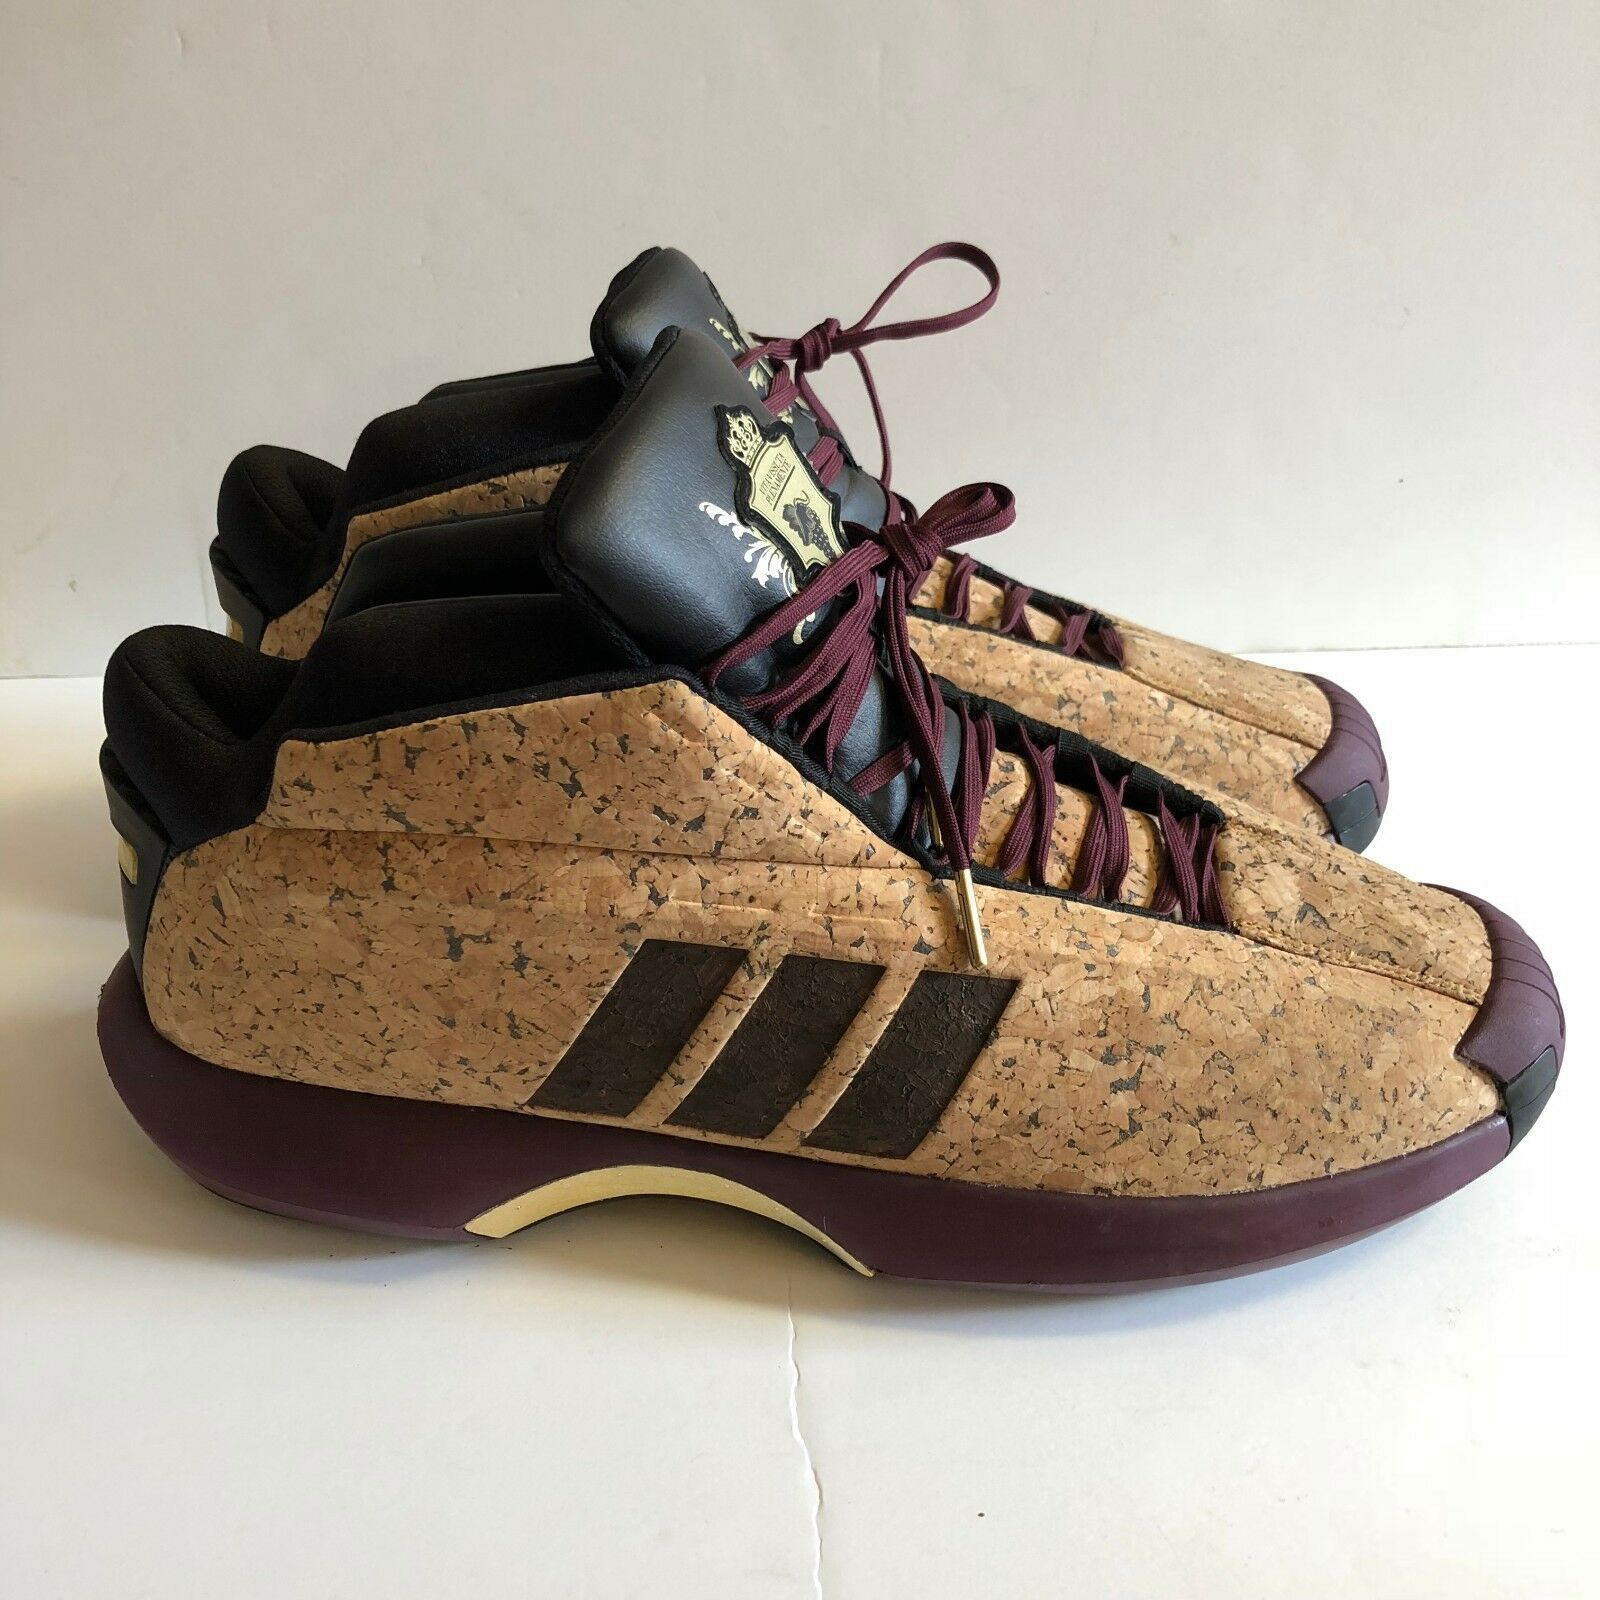 Adidas Crazy 1 Basketball Shoes Maroon Cork Wine Vino Kobe Bryant Size 17 AQ8551